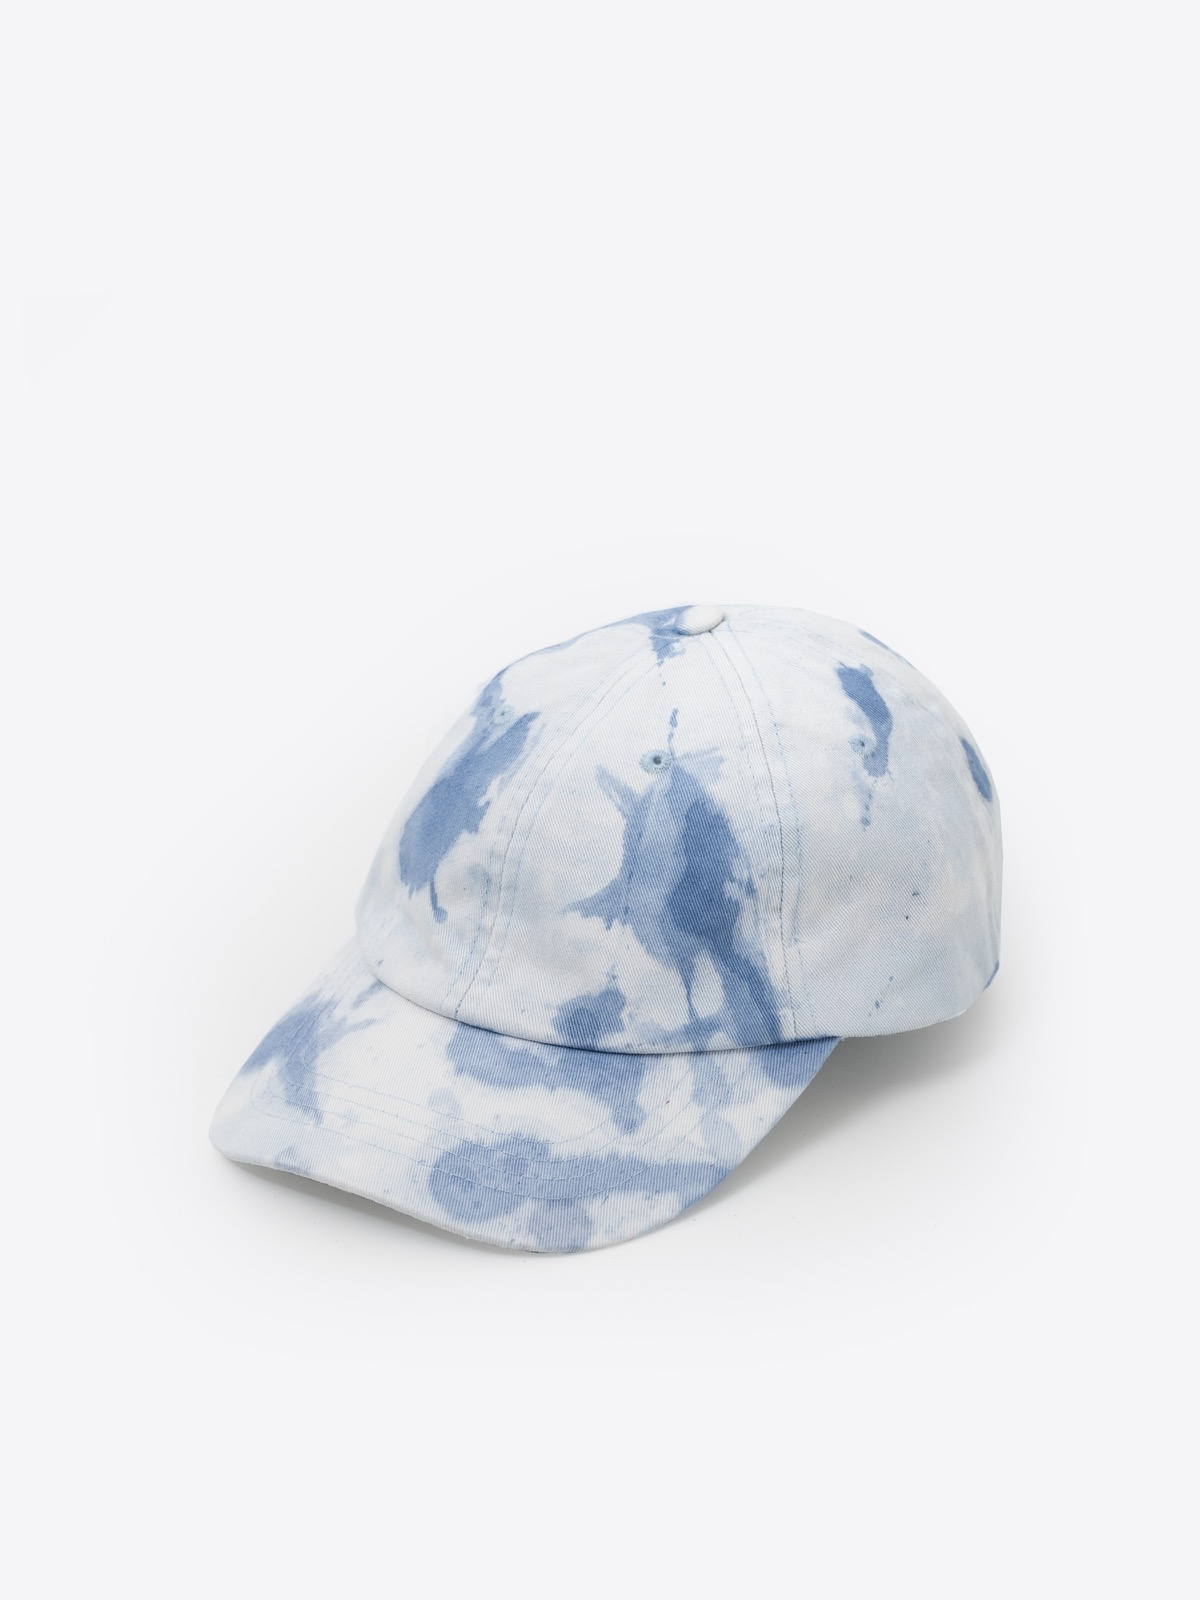 - primitive hut | utopia blue white clouded